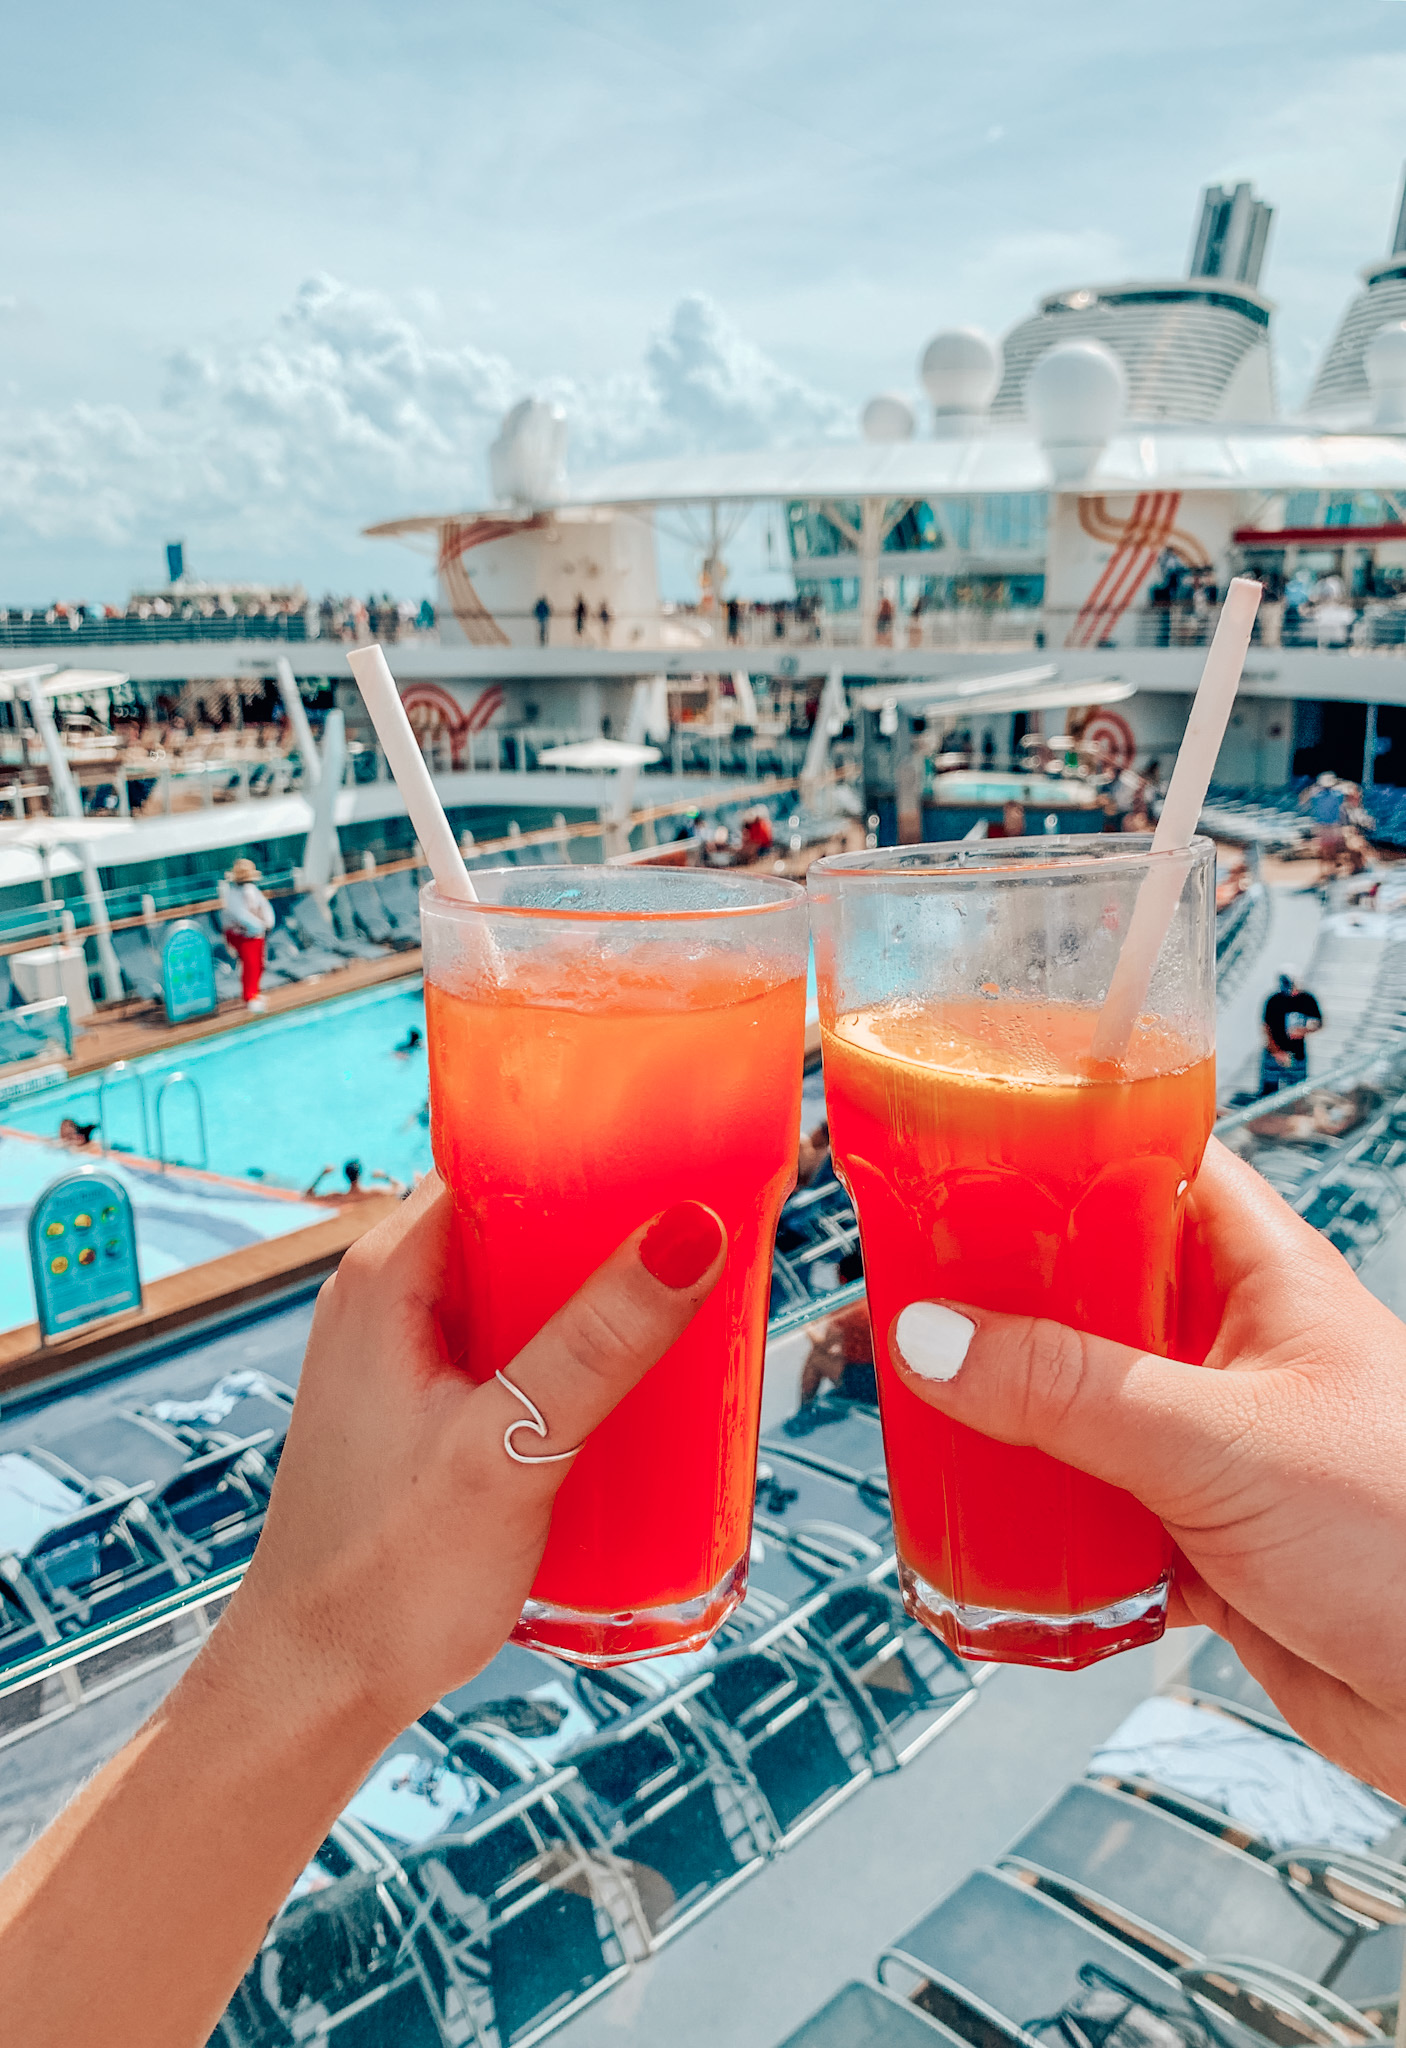 Sippin' on Bahama Mamas as we set sail to the Bahamas on Royal Caribbean's Harmony of the Seas